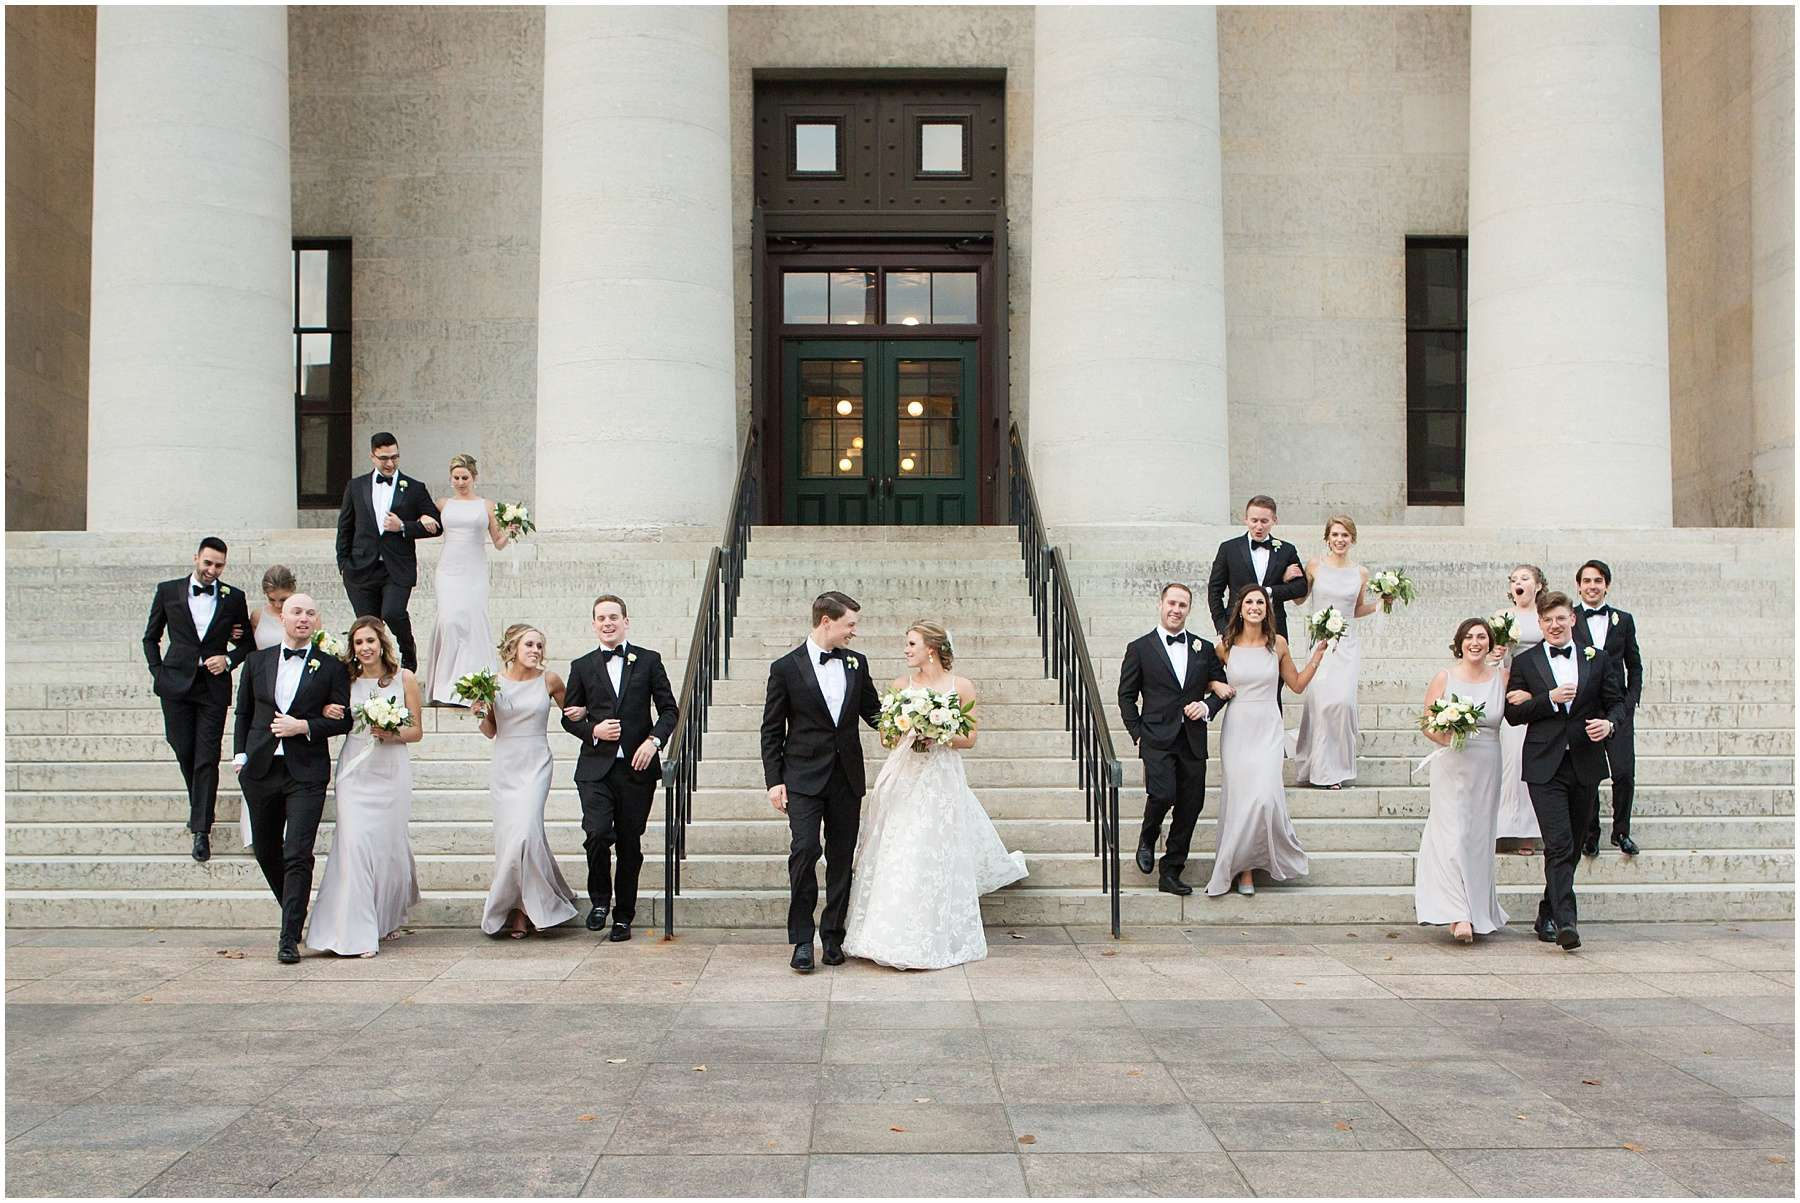 Wedding at the Ohio Statehouse | Columbus Ohio Weddings 148